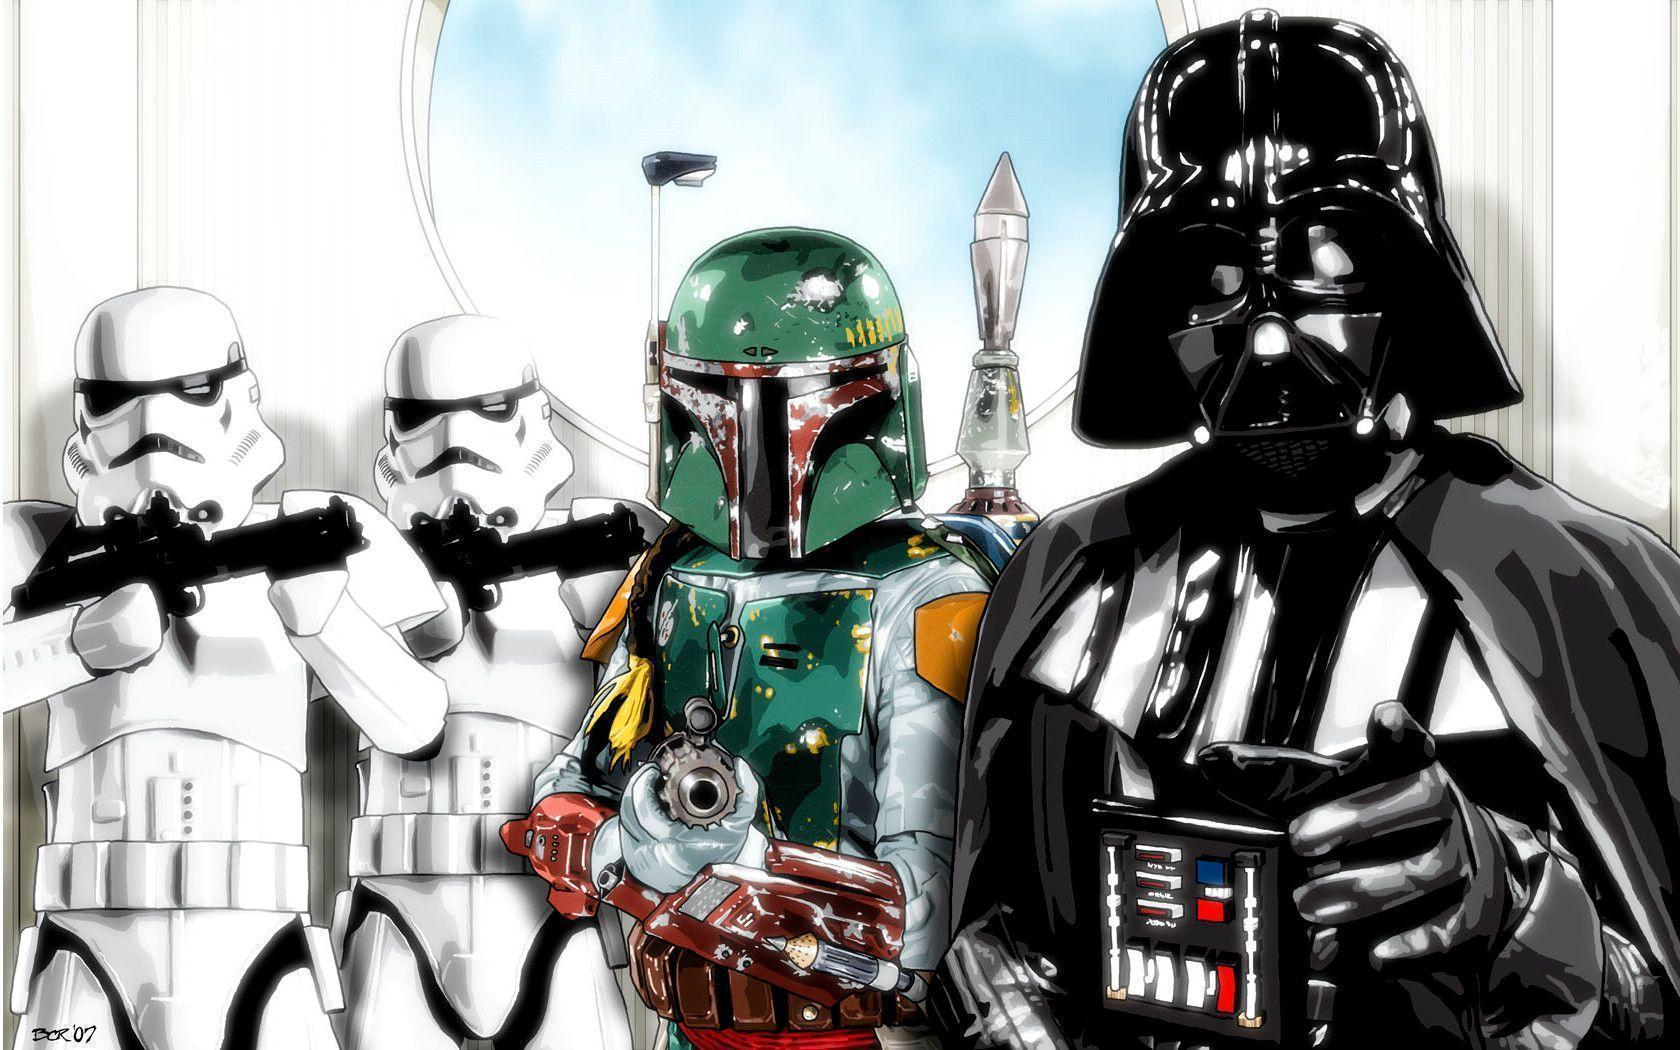 Star Wars Rumor Boba Fett Spinoff Puts New Character In The Armor